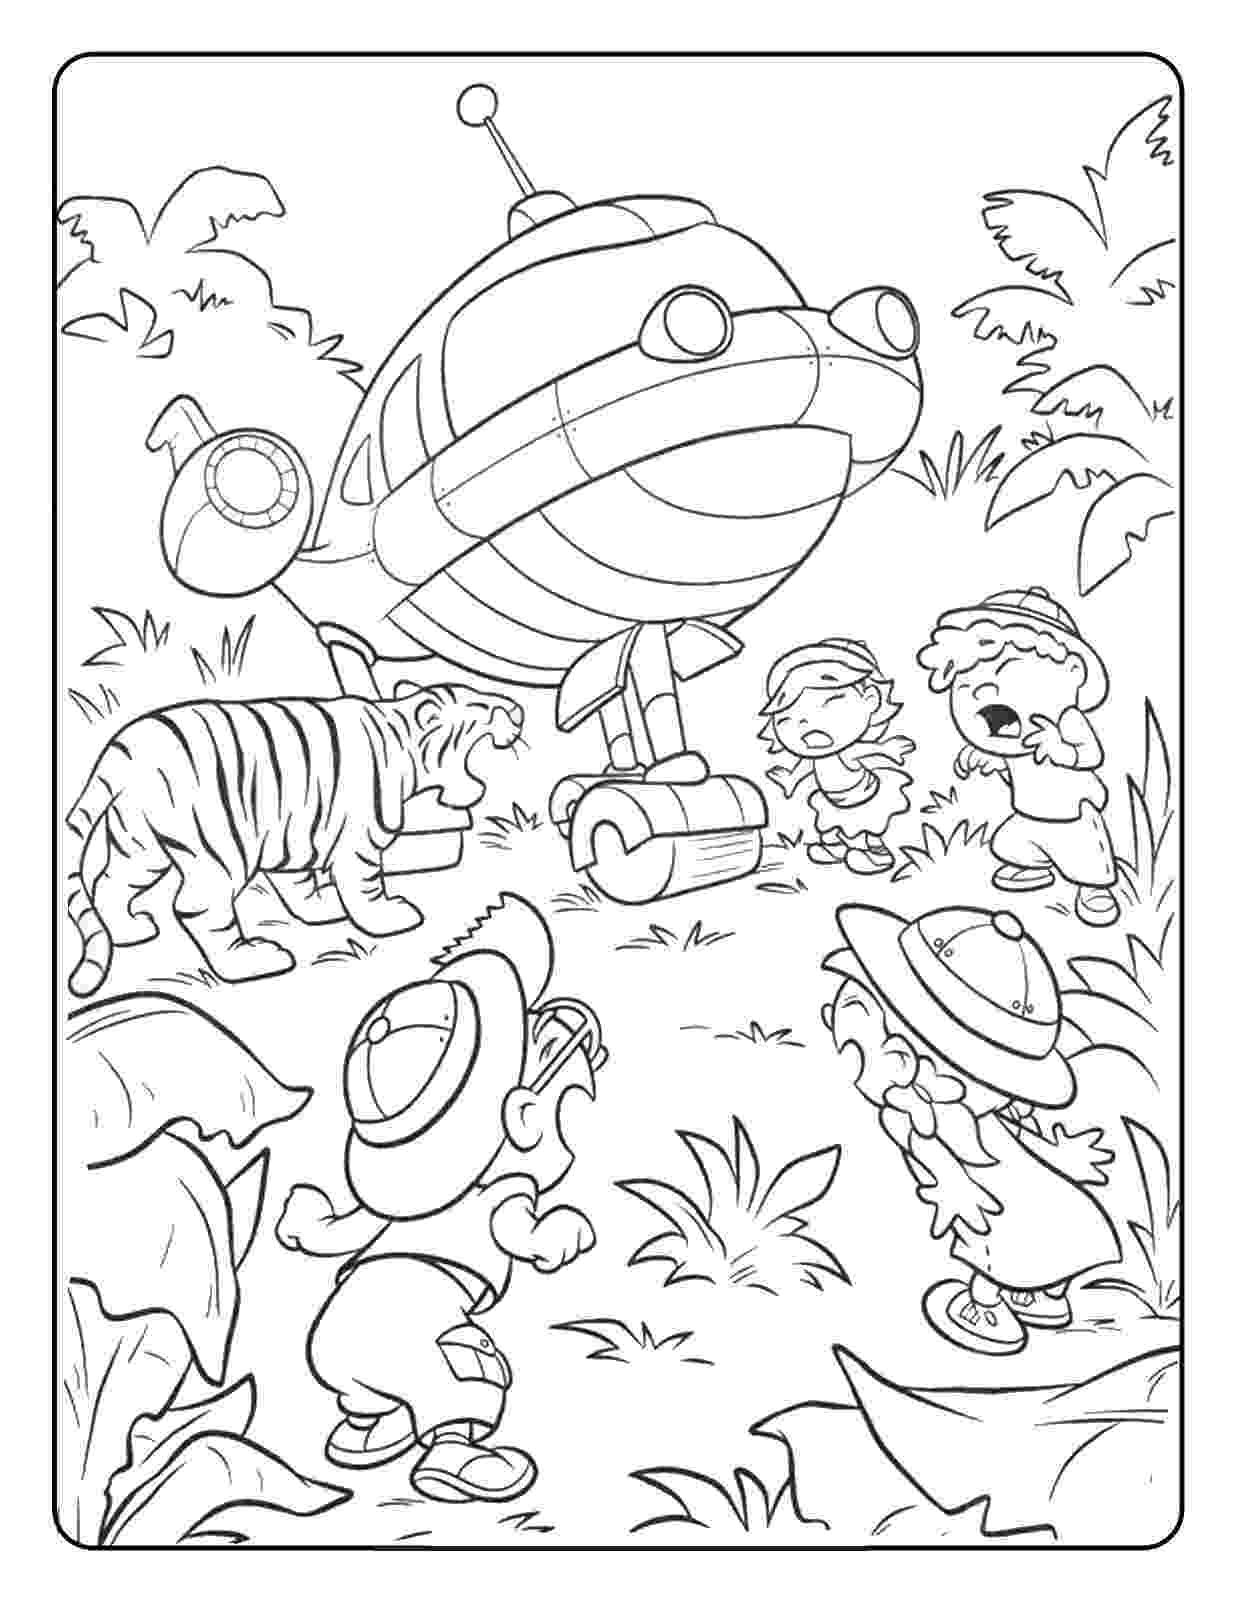 printable coloring pictures star wars solo free printable activity sheets any tots coloring pictures printable